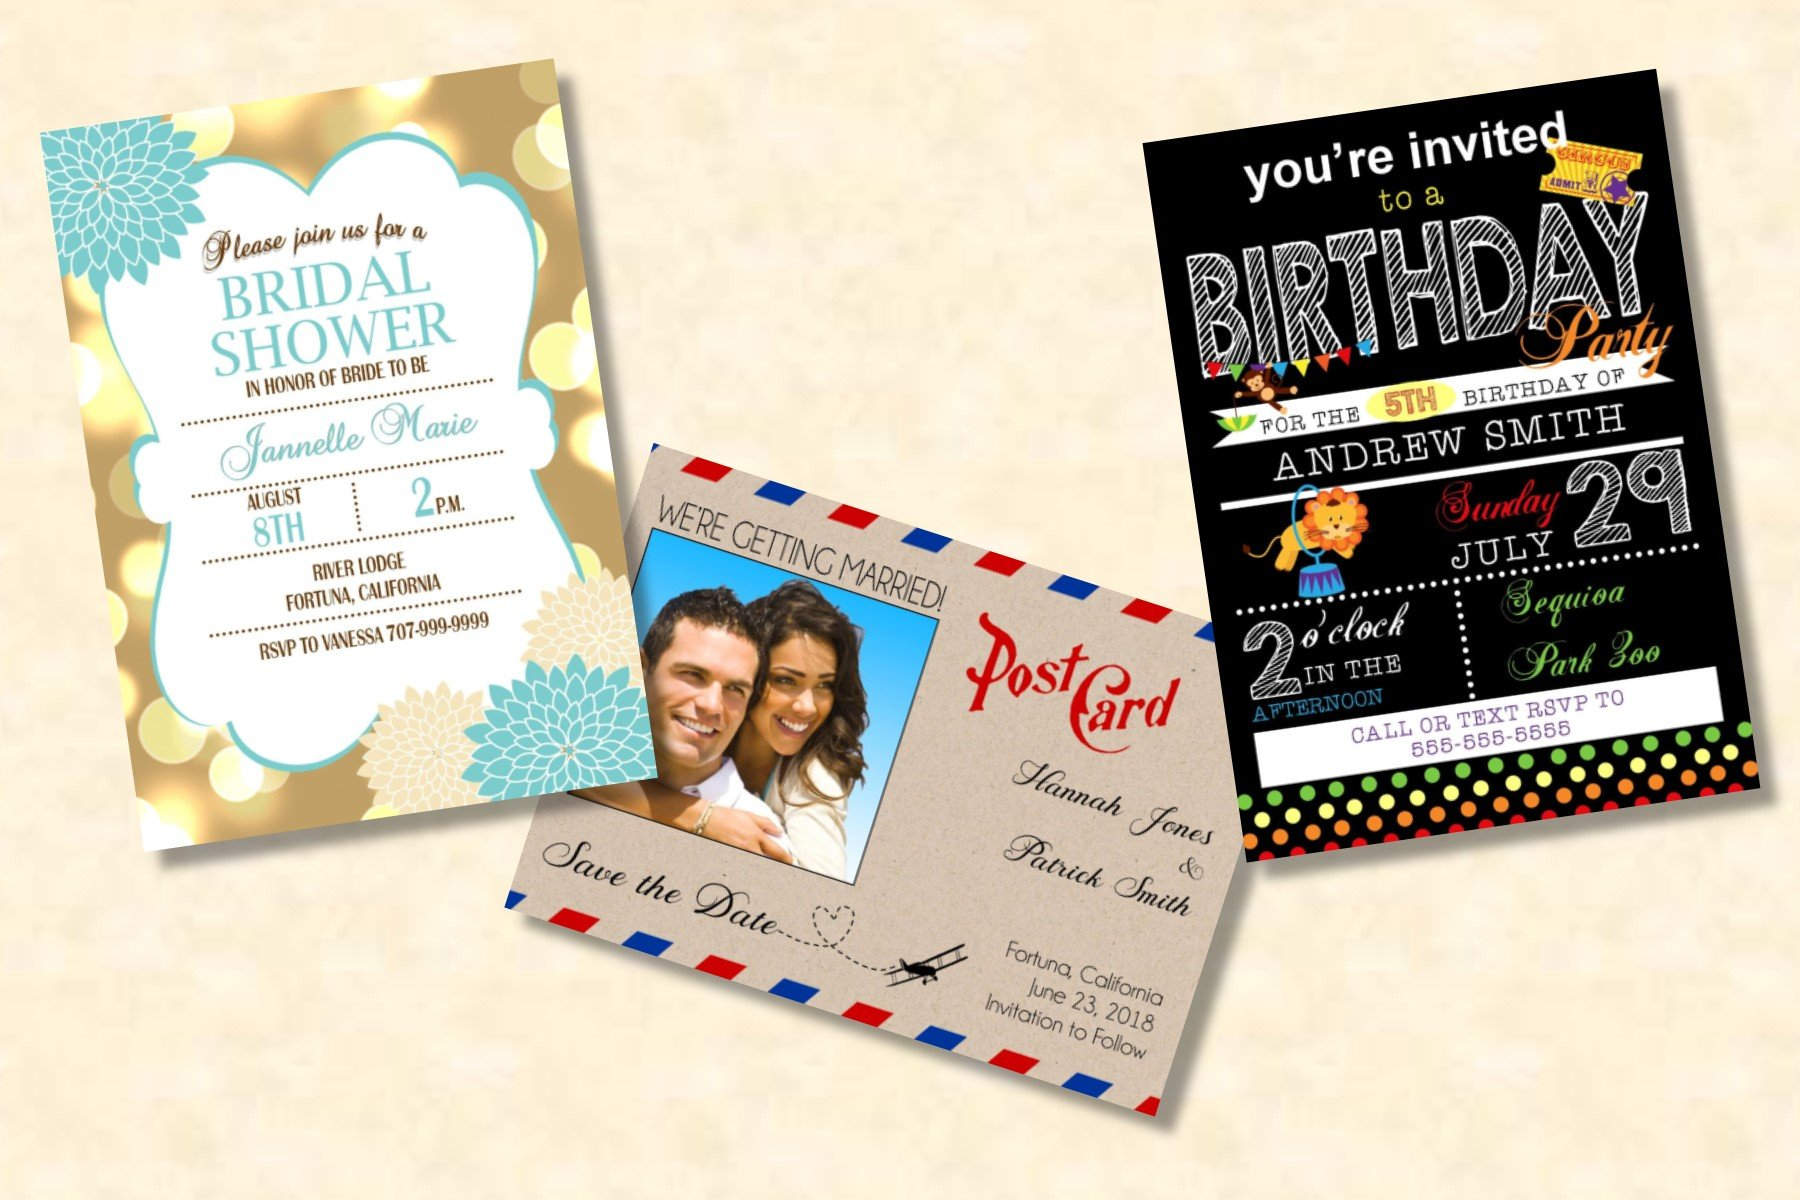 Postcard & Invitation Black Printing Options 5x7